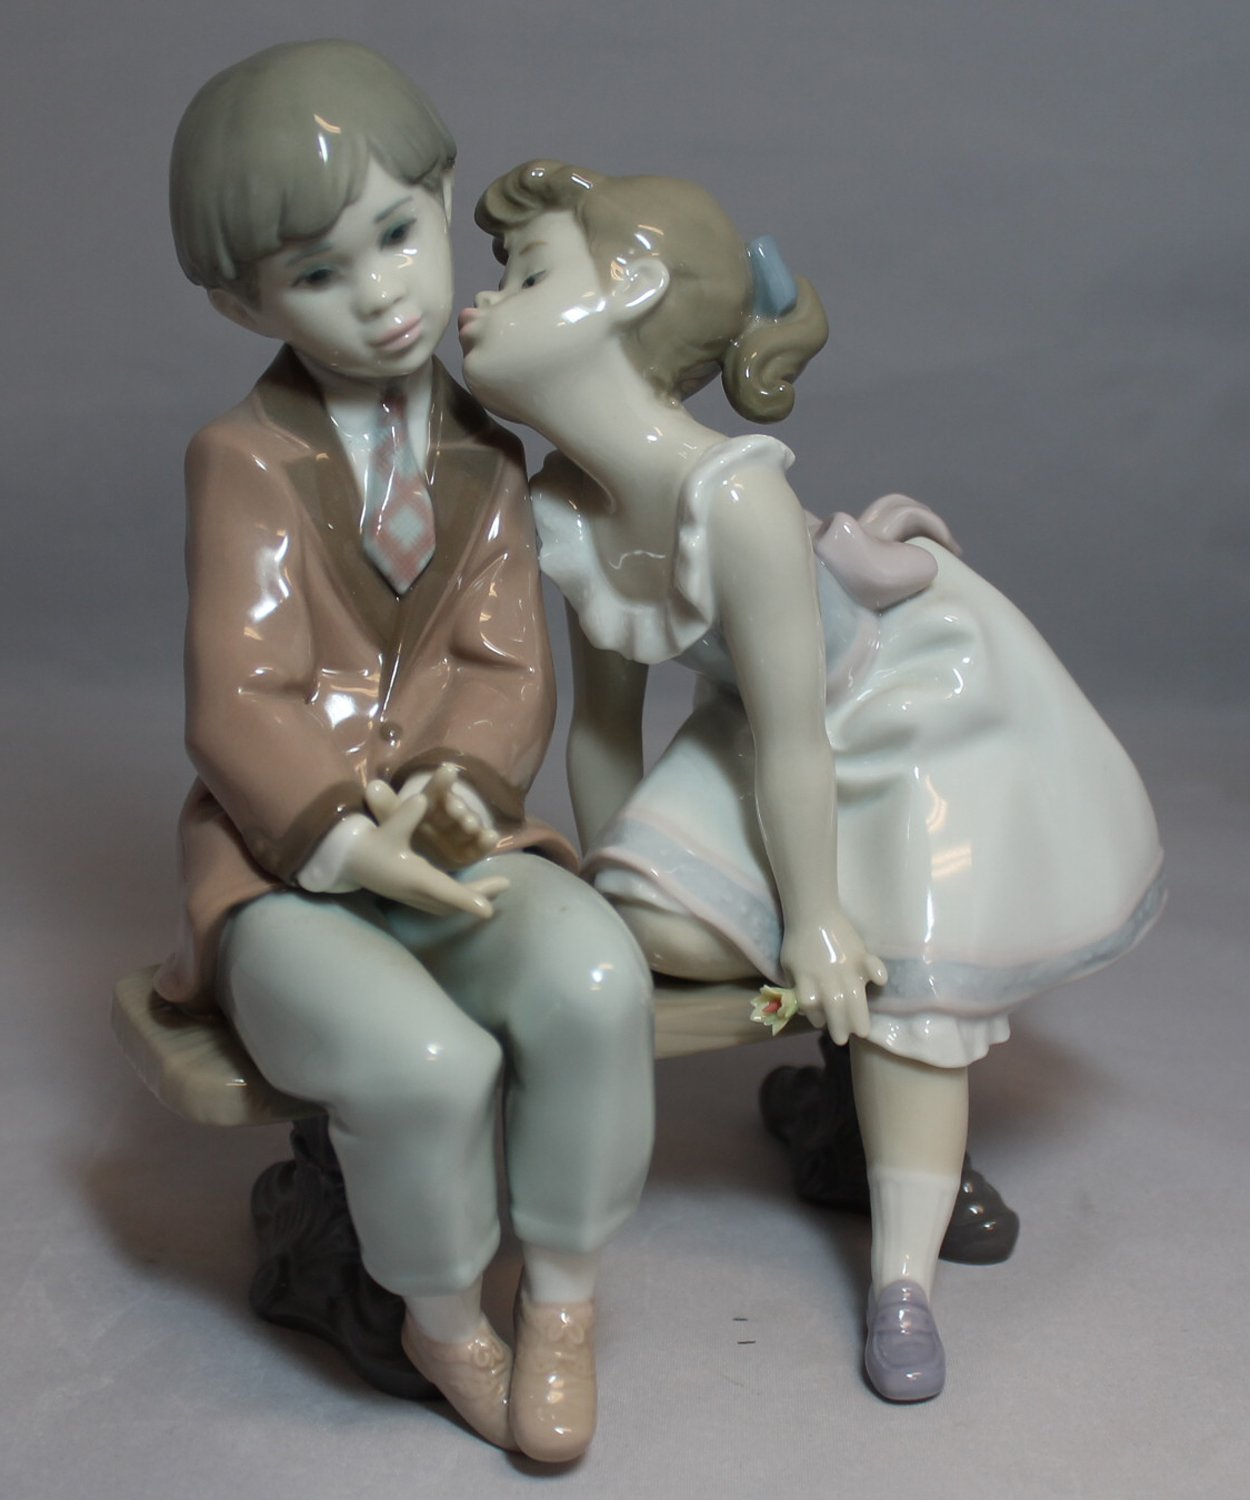 Lladro ''Ten and Growing'' #07635....Brand New in Original Box....Stamped under the base with the Lladro Logo #7635 and ''10th Anniversary LCS 1985/1995''...this lovely figurine measures 7 1/2'' long by 8'' tall...